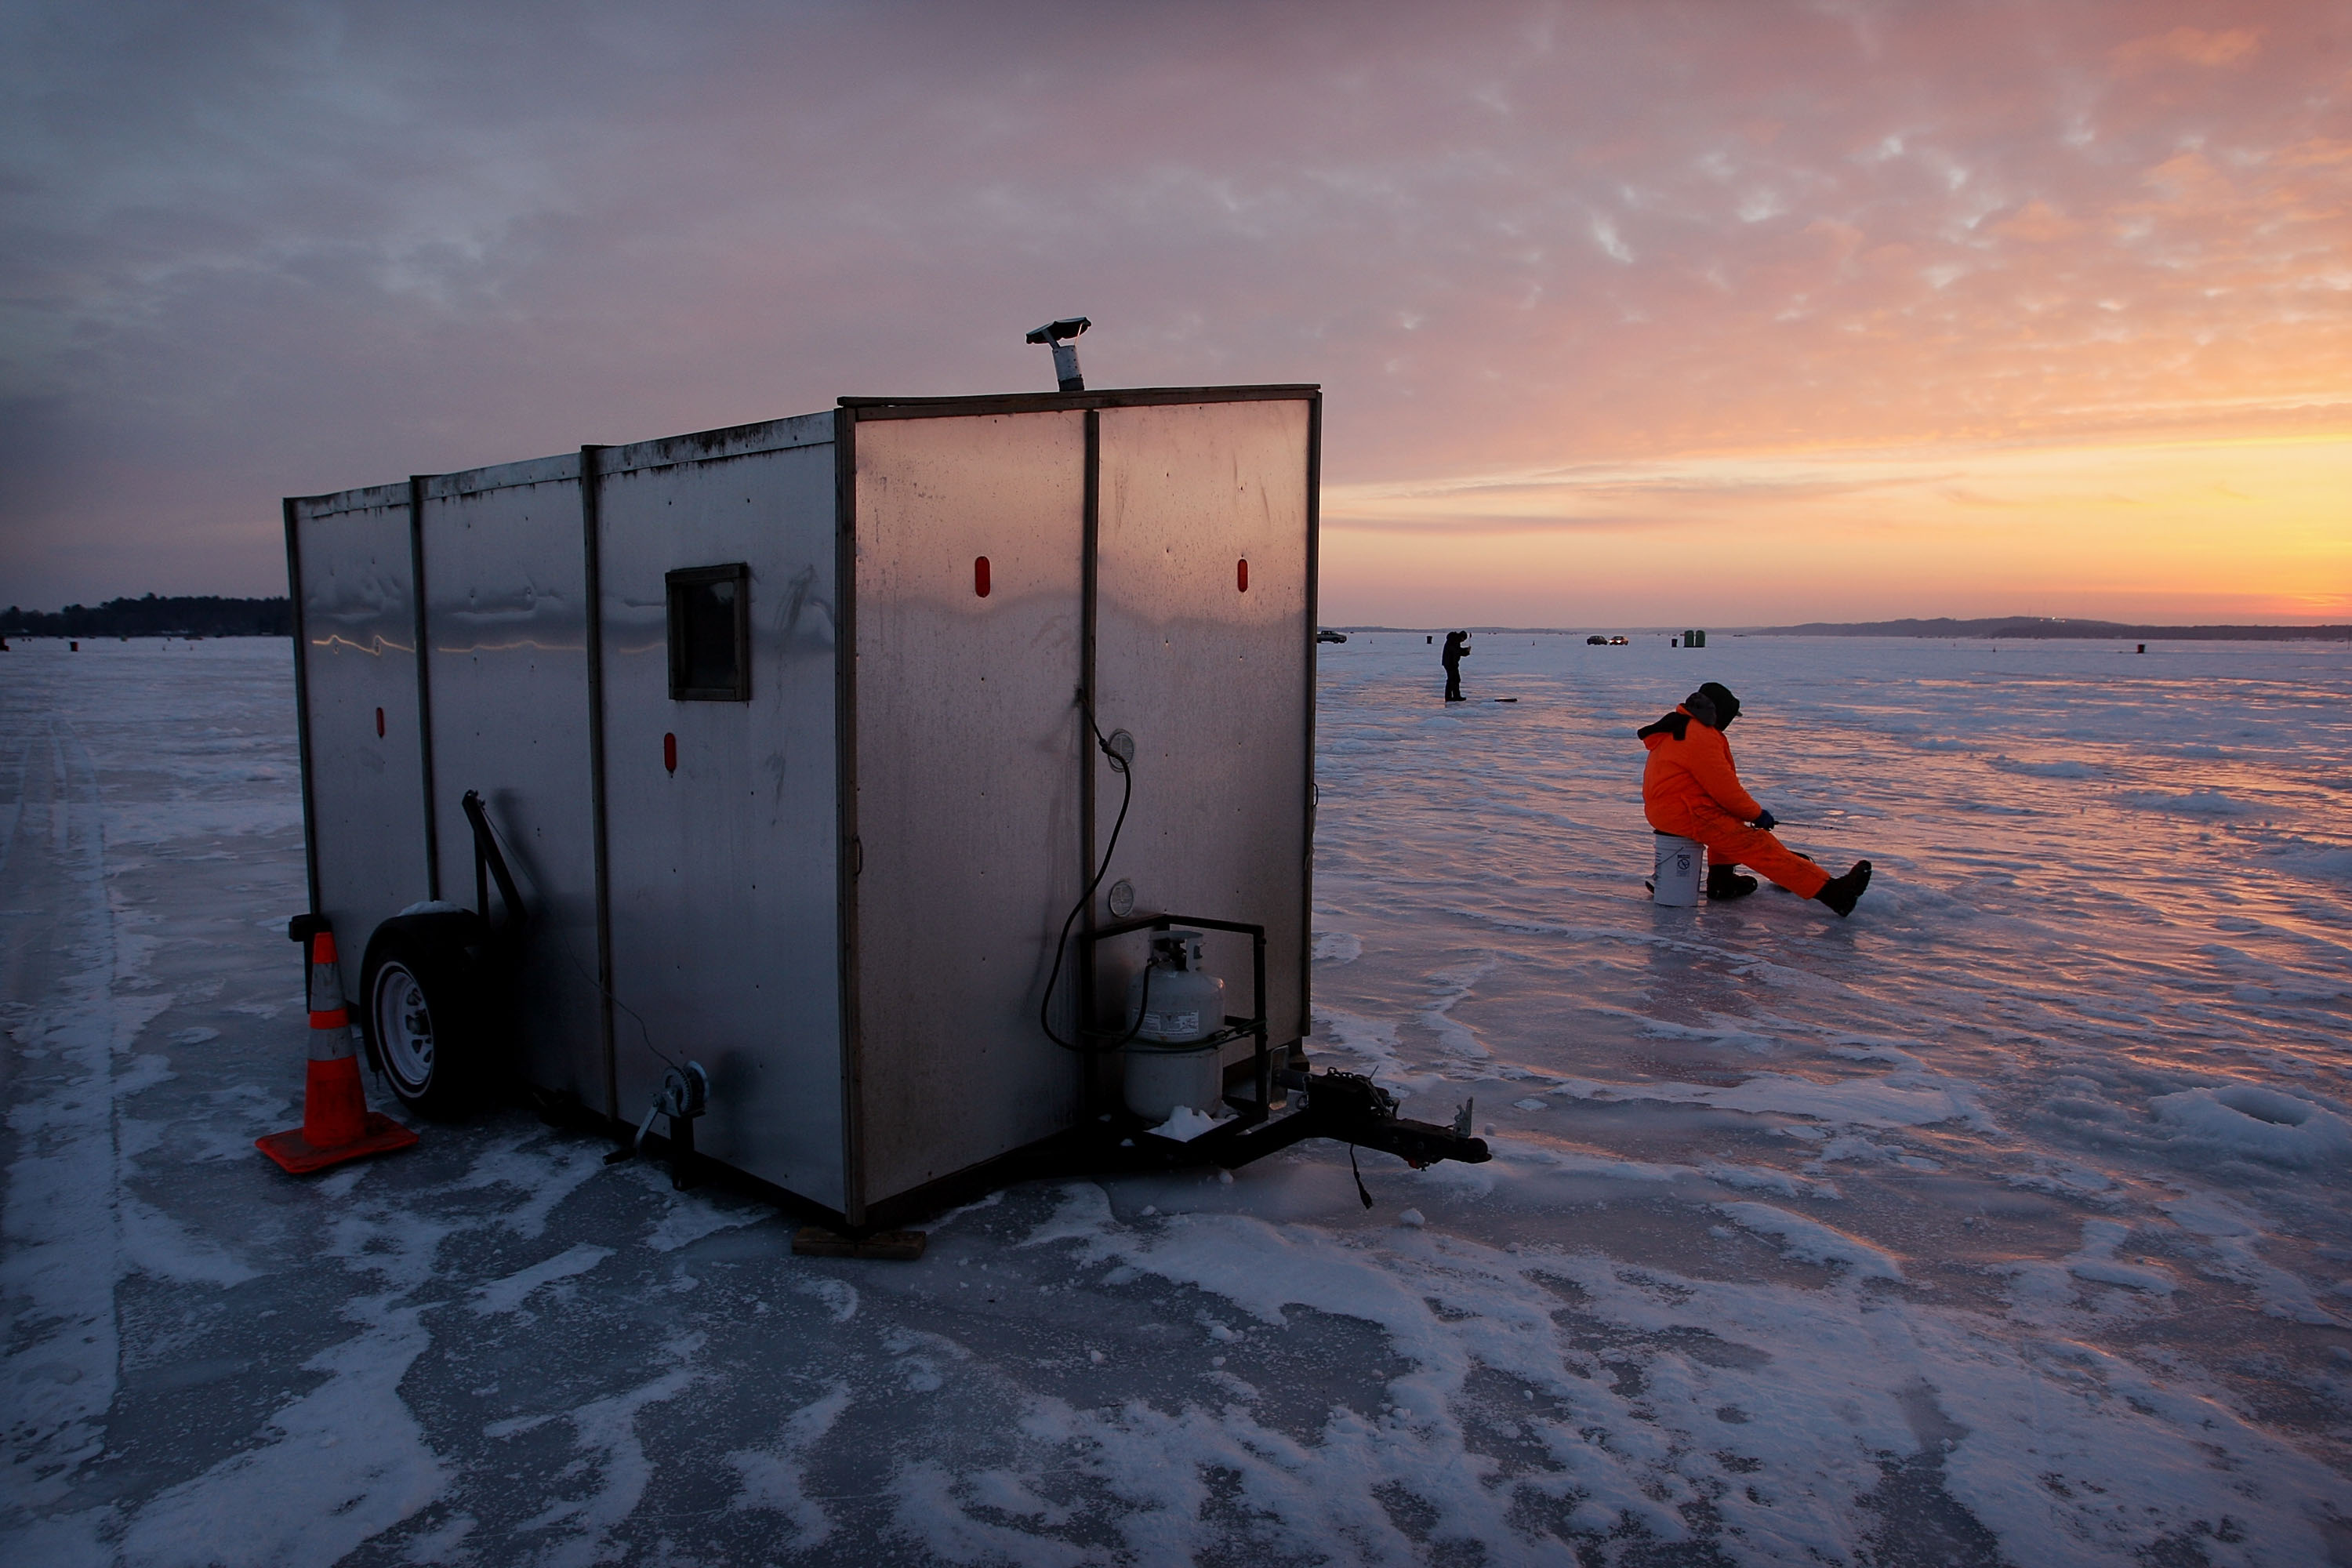 Ice fishing is really catching on … at least when the weather cooperates! (Getty Images)